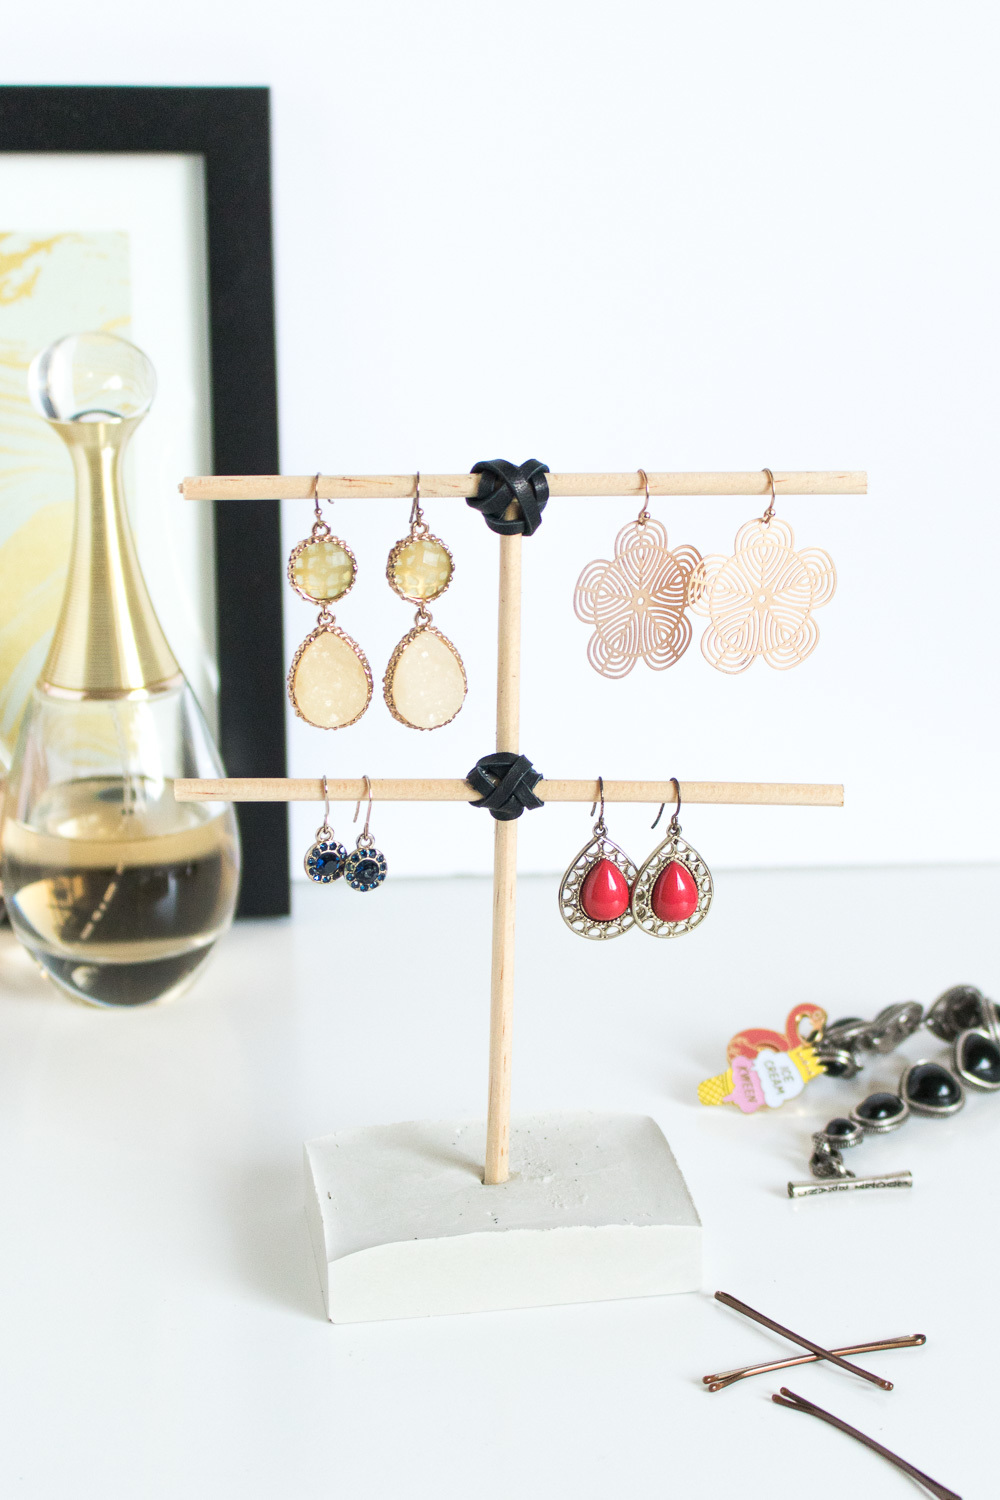 Organize Dangling Earrings with this DIY Concrete Earring Tree